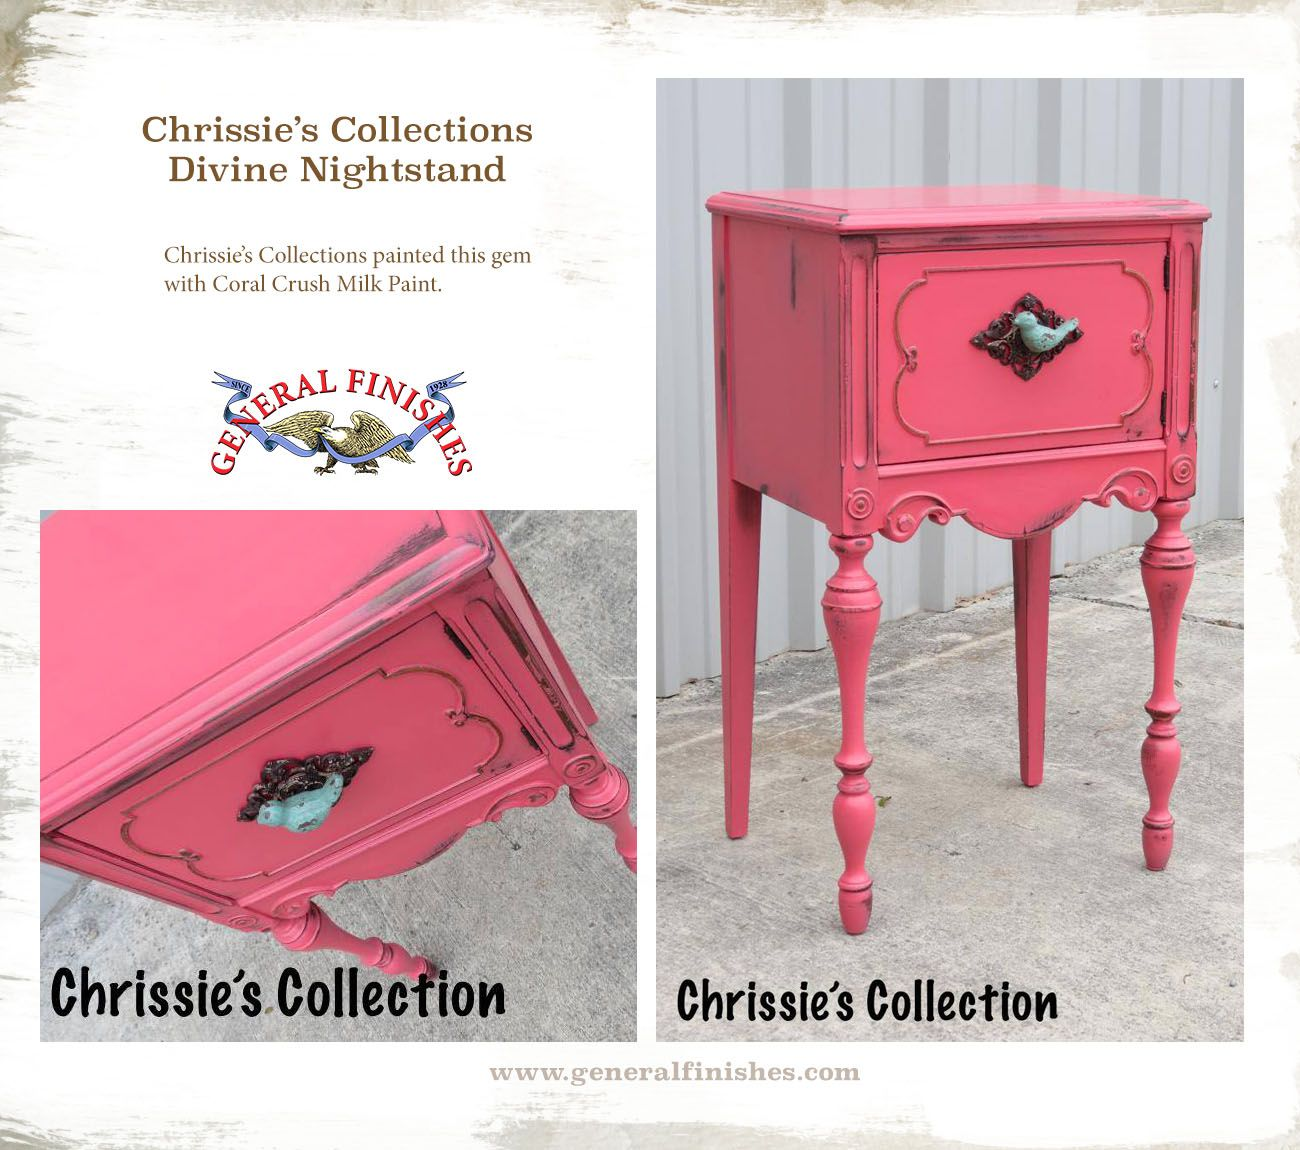 Chrissie S Collection Www Chrissiescollection Com Used General Finishes Coral Crush Milk Paint Crate Furniture Diy Nightstand Makeover Painting Old Furniture